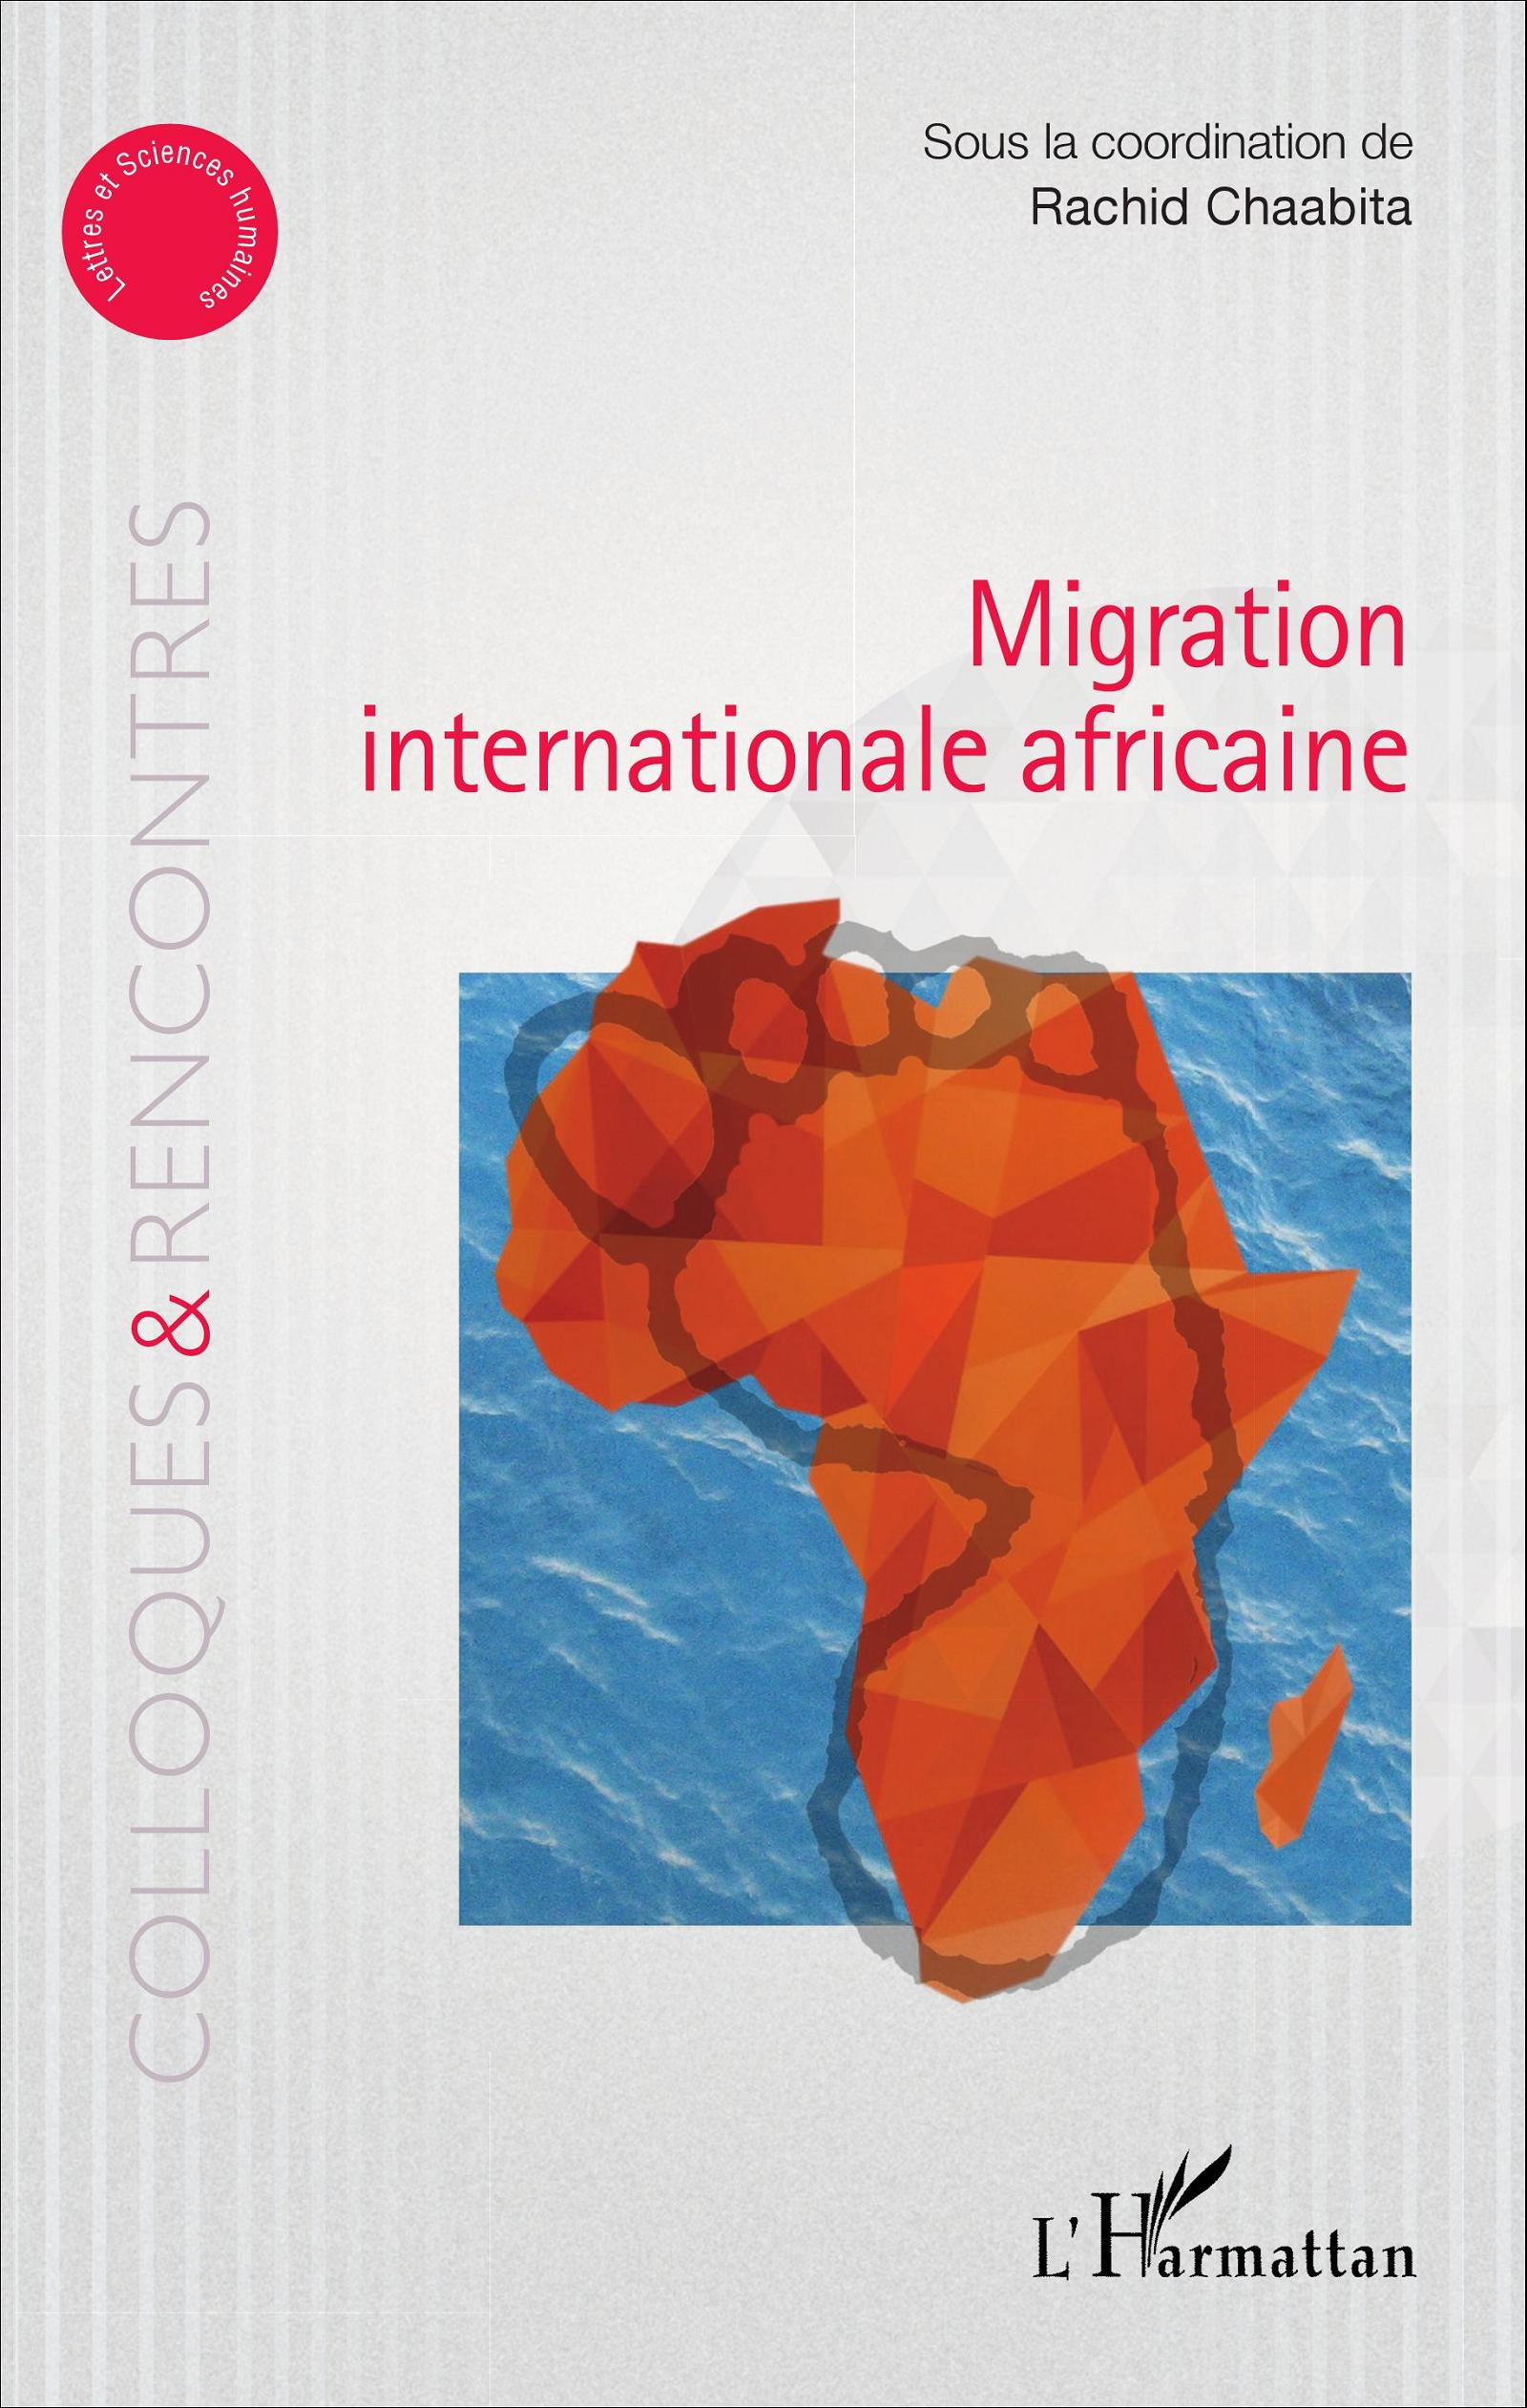 Ebook migration internationale africaine nach rachid chaabita 7switch - Office de migration internationale ...